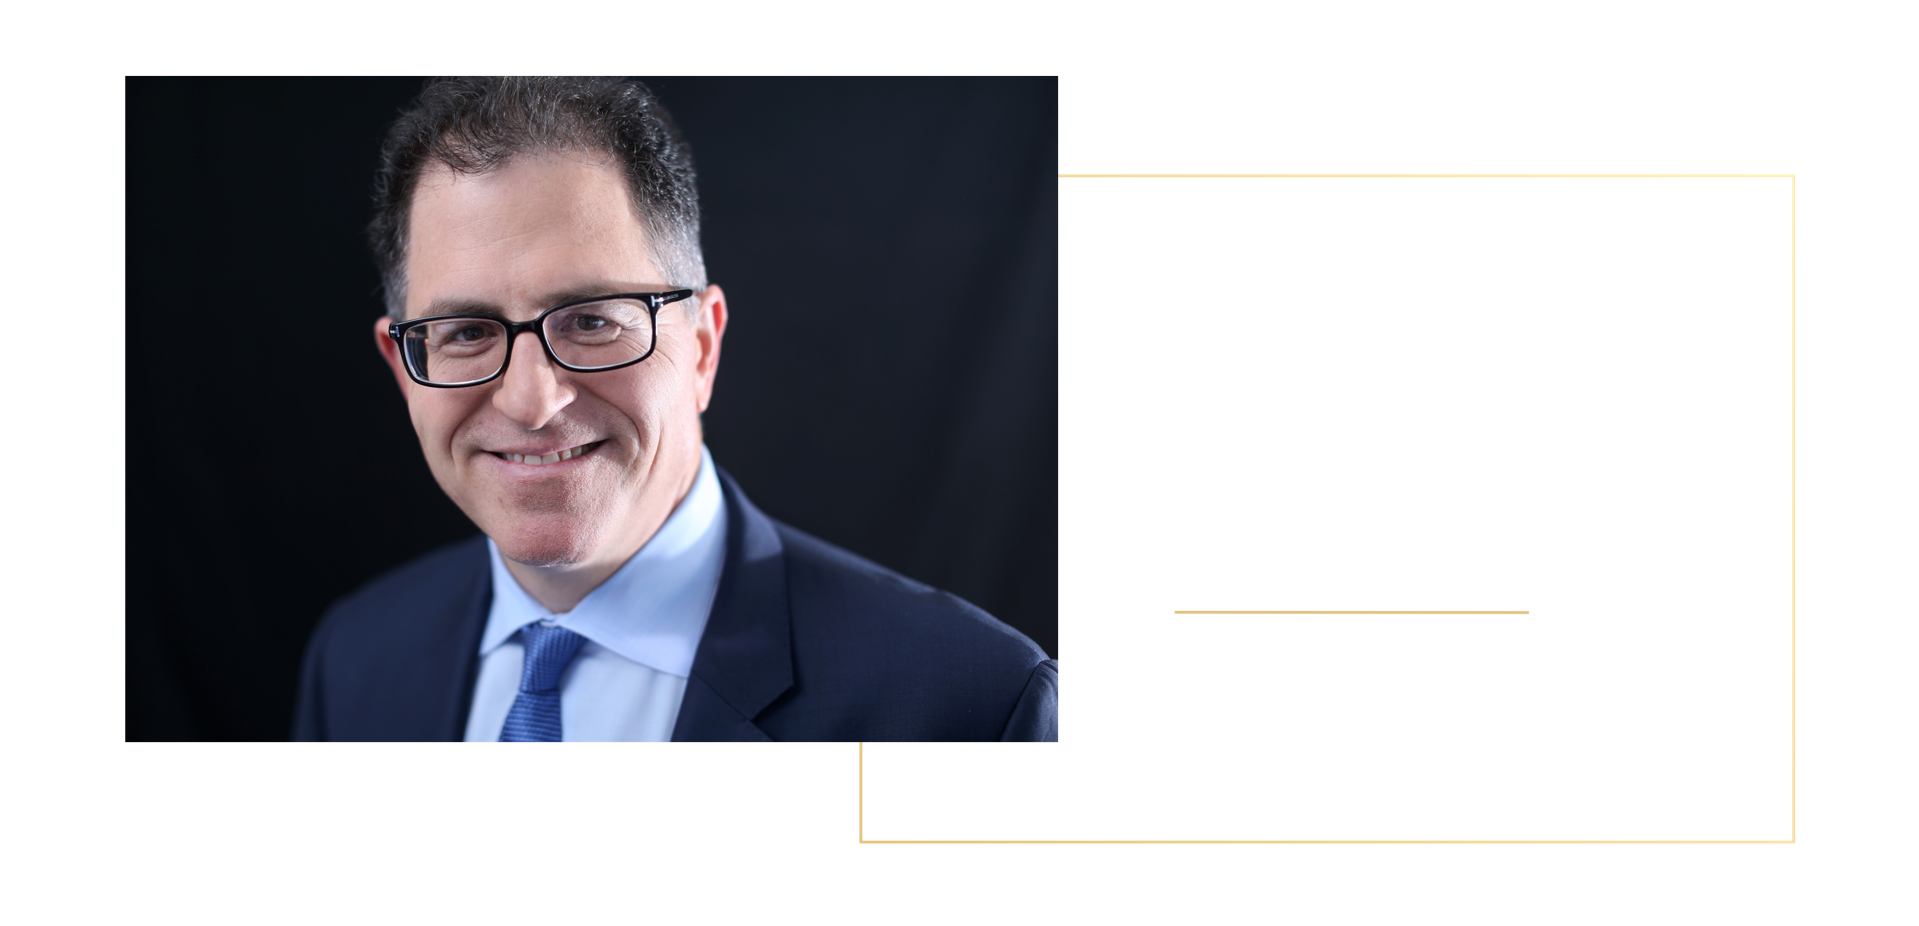 Michael Dell Founder, Chairman and CEO of Dell Technologies Net Worth: $32.3 Billion